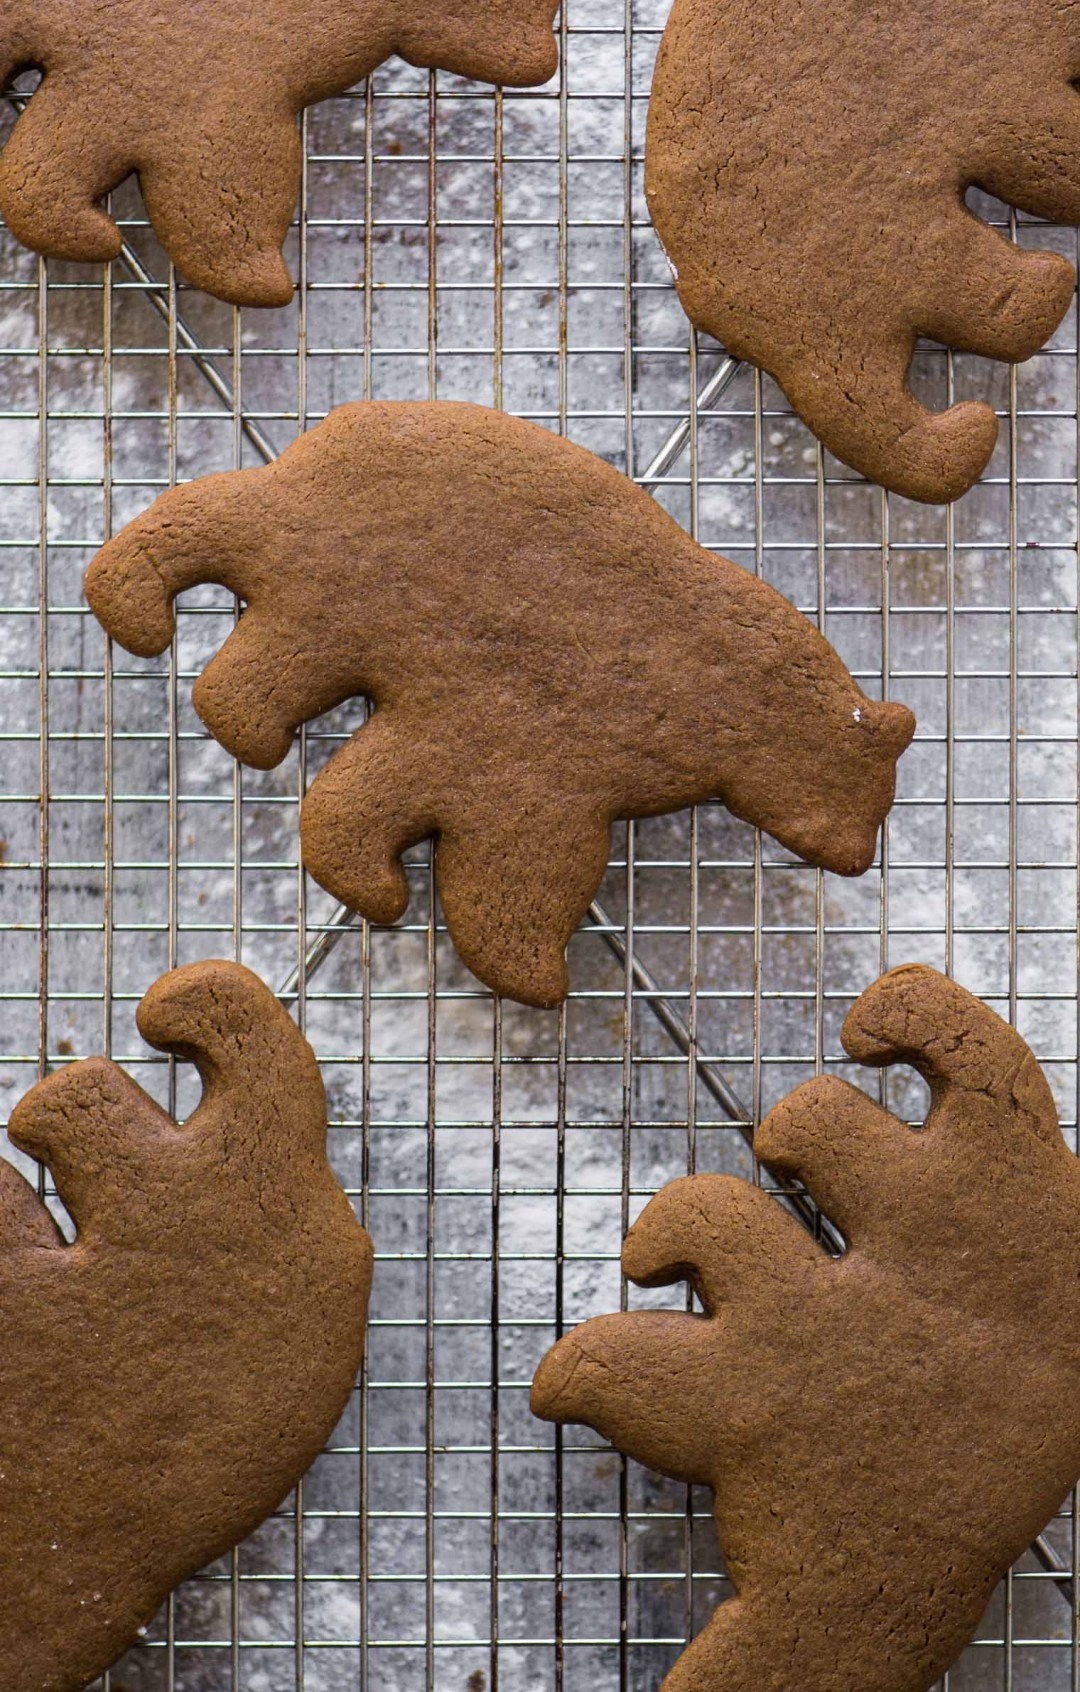 Polar Bear gingerbread cookies on a cooling rack